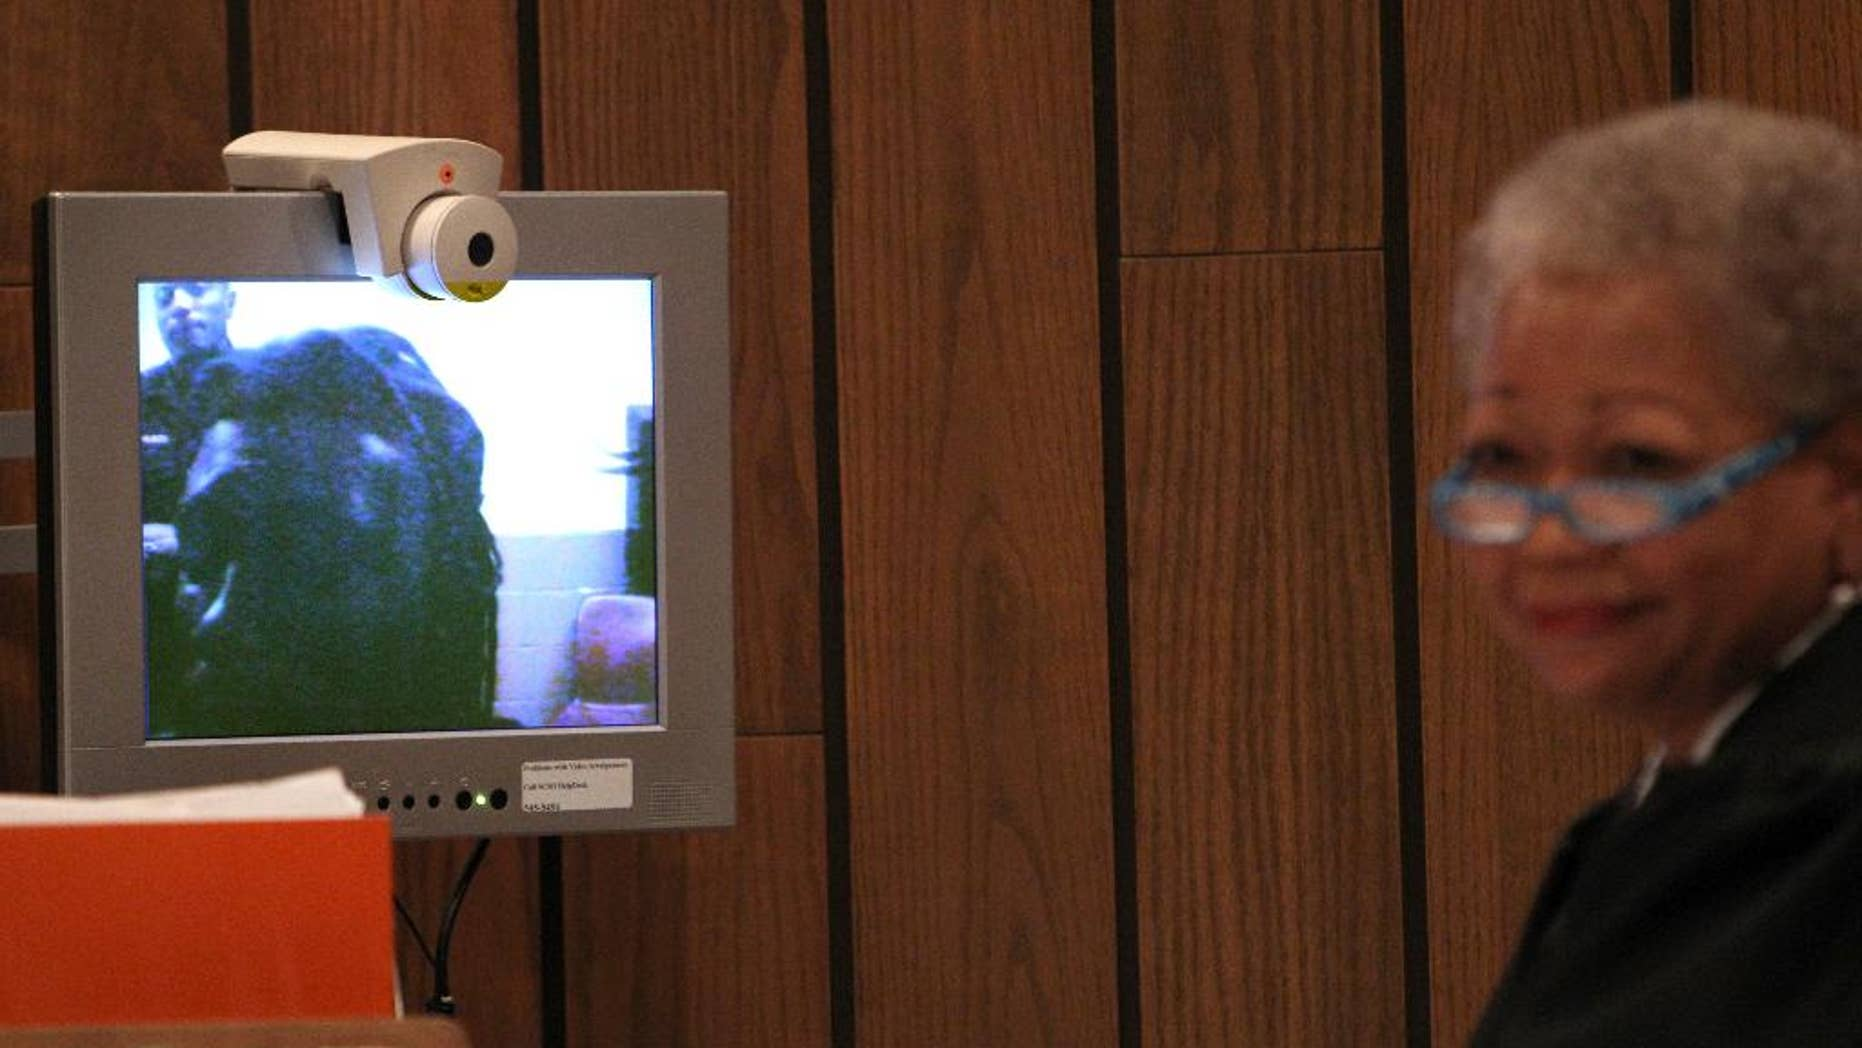 Defendant Tremaine Wilbourn appears before Judge Loyce Lambert Ryan via video arraignment Wednesday, Aug. 5, 2015, in general session court Division 15 on charges of first degree murder for the death of Memphis police Officer Sean Bolton. Wilbourn did not enter a plea on the charge of first-degree murder. (Mike Brown/The Commercial Appeal via AP)